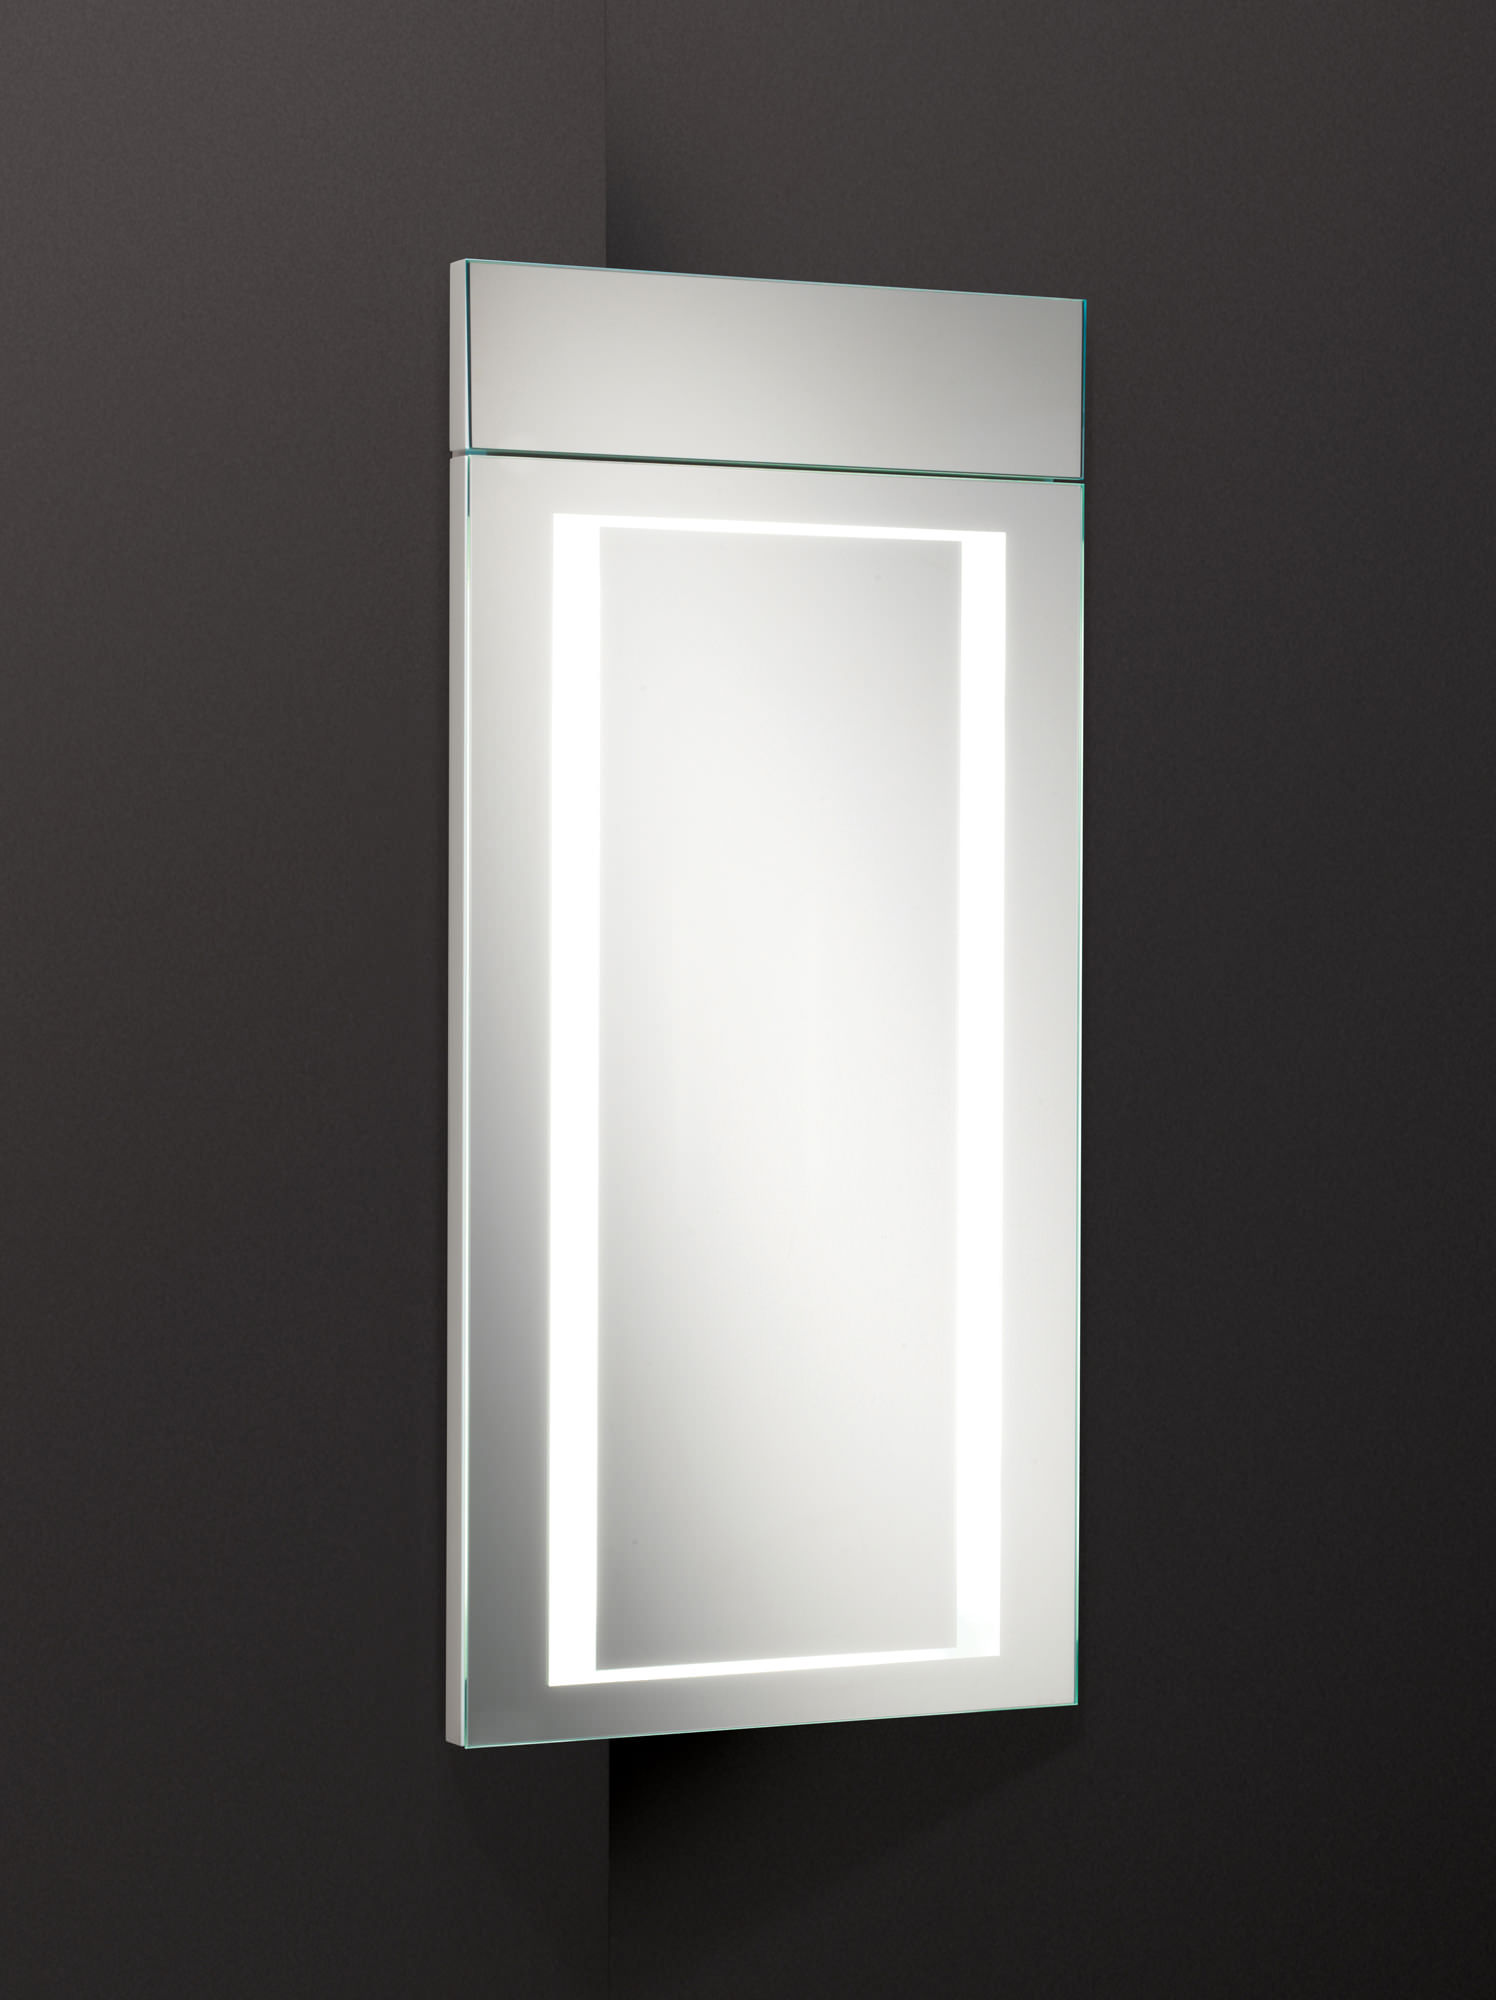 Hib minnesota led illuminated corner bathroom cabinet 300 for Bathroom cabinets led